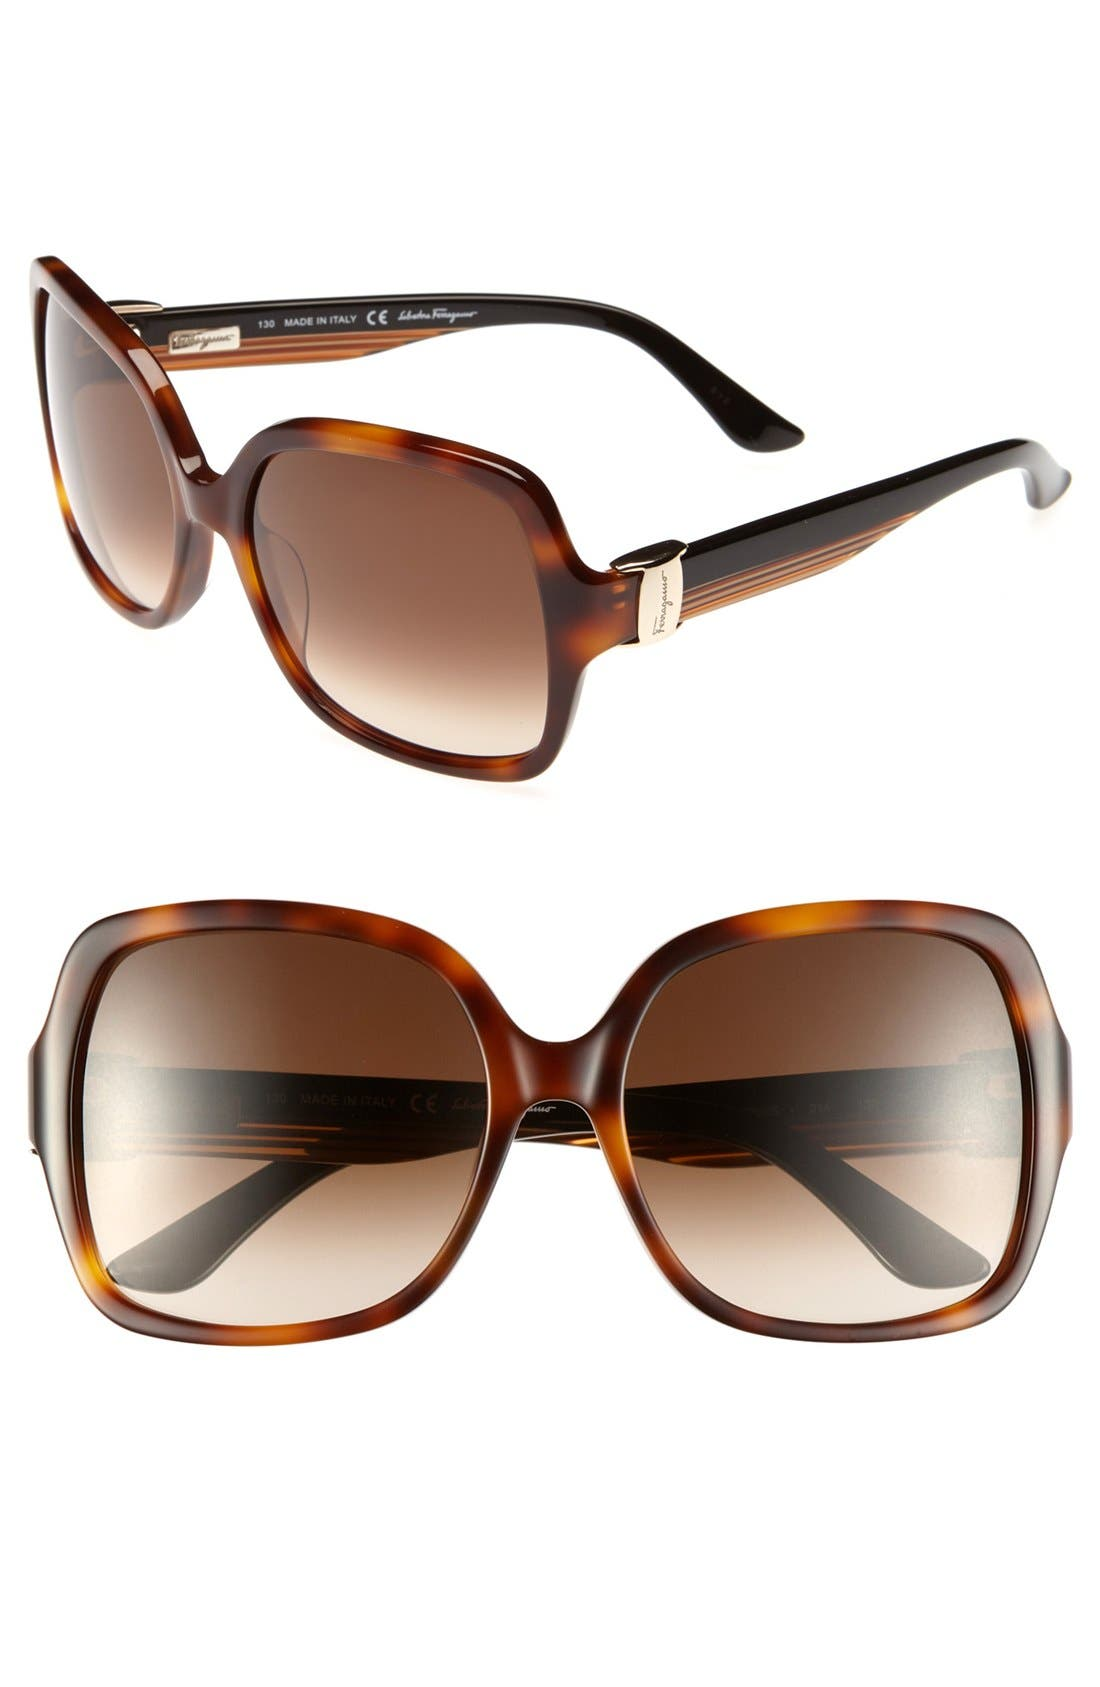 Alternate Image 1 Selected - Salvatore Ferragamo 56mm Oversized Sunglasses